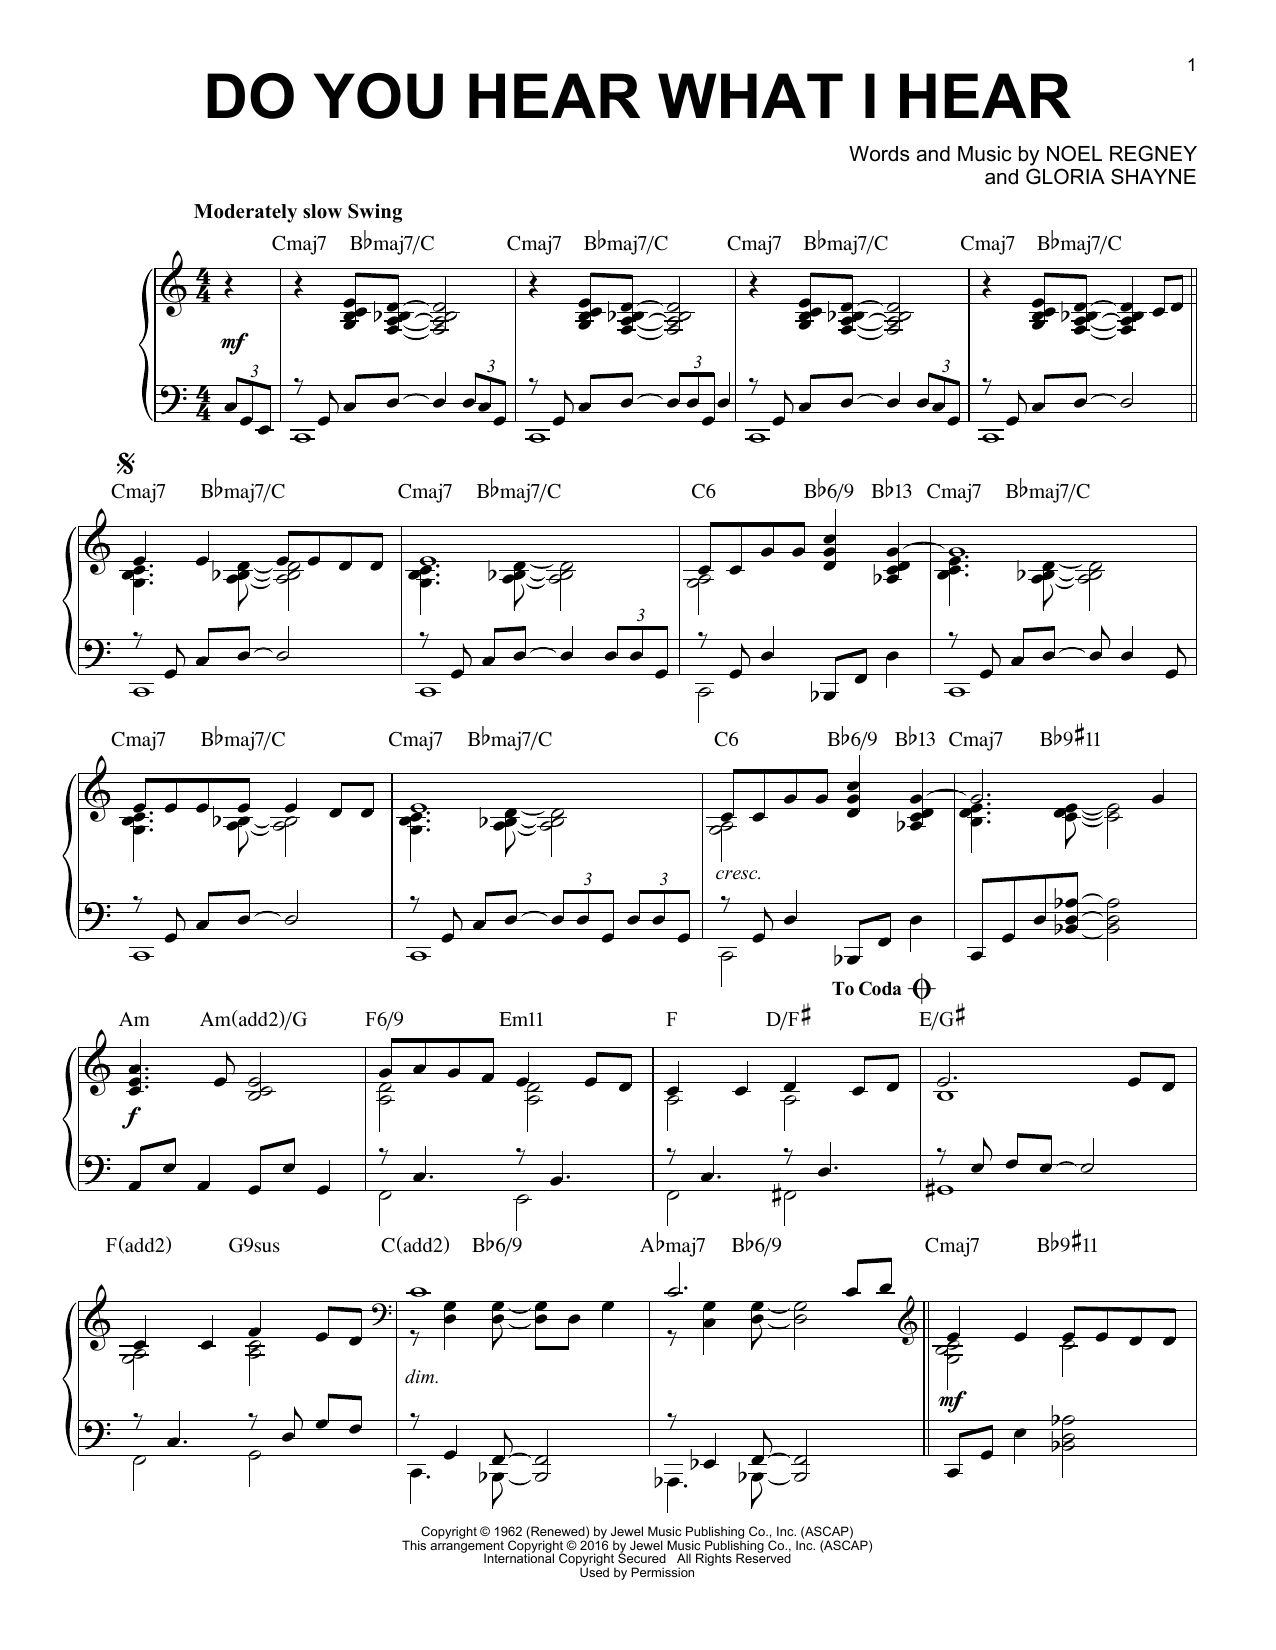 Noel Regney Do You Hear What I Hear [Jazz version] (arr. Brent Edstrom) sheet music notes and chords. Download Printable PDF.